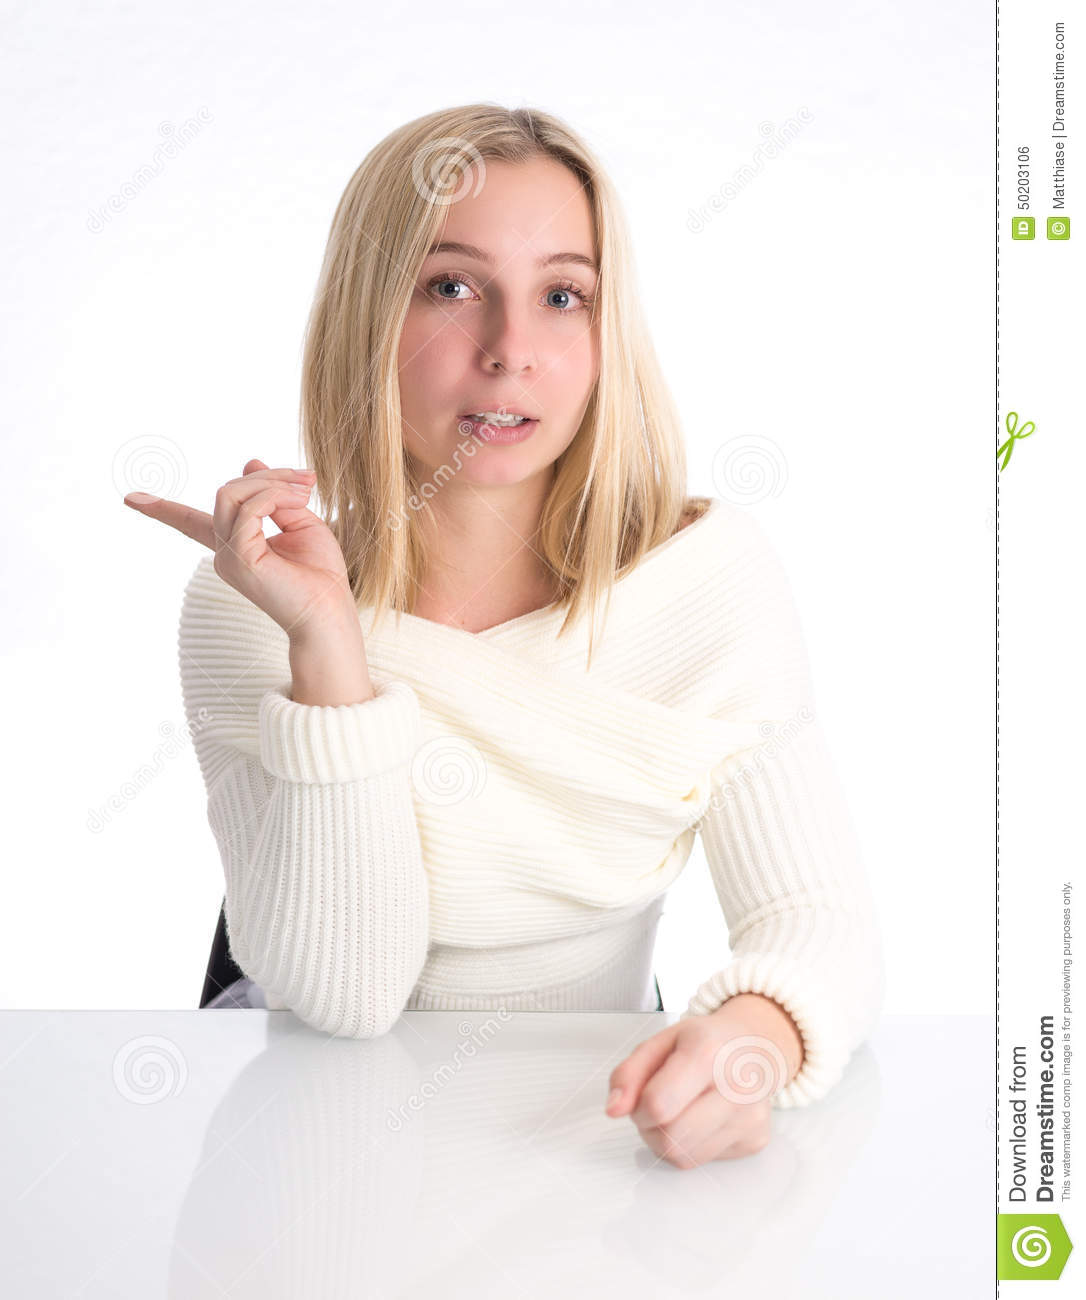 Girl pointing to her side